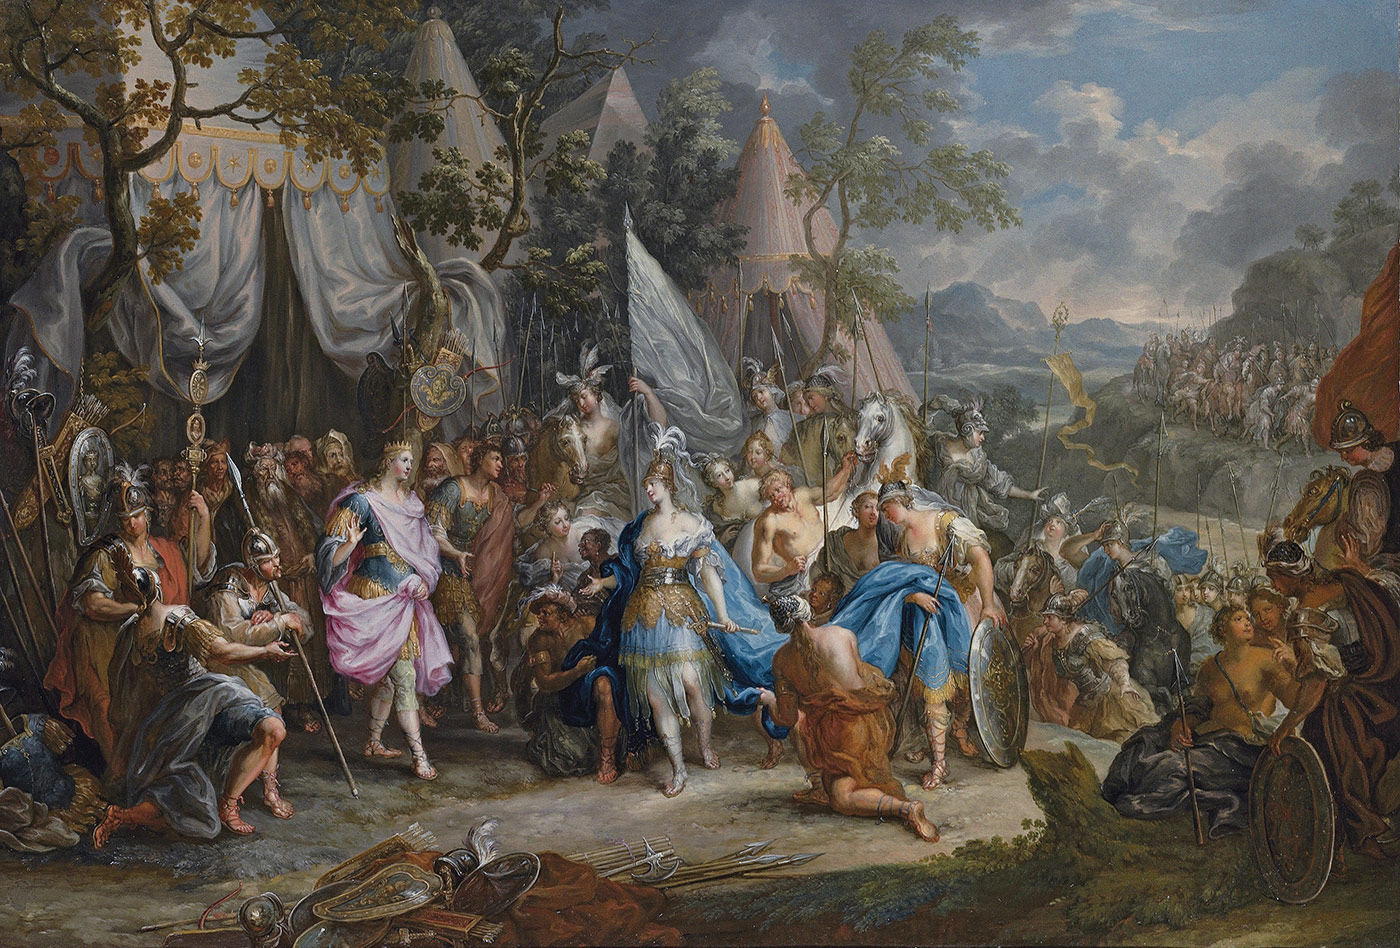 A clash of titans. - The Amazon Queen, Thalestris, in the Camp of Alexander the Great by Johann Georg Platzer, c.1750.